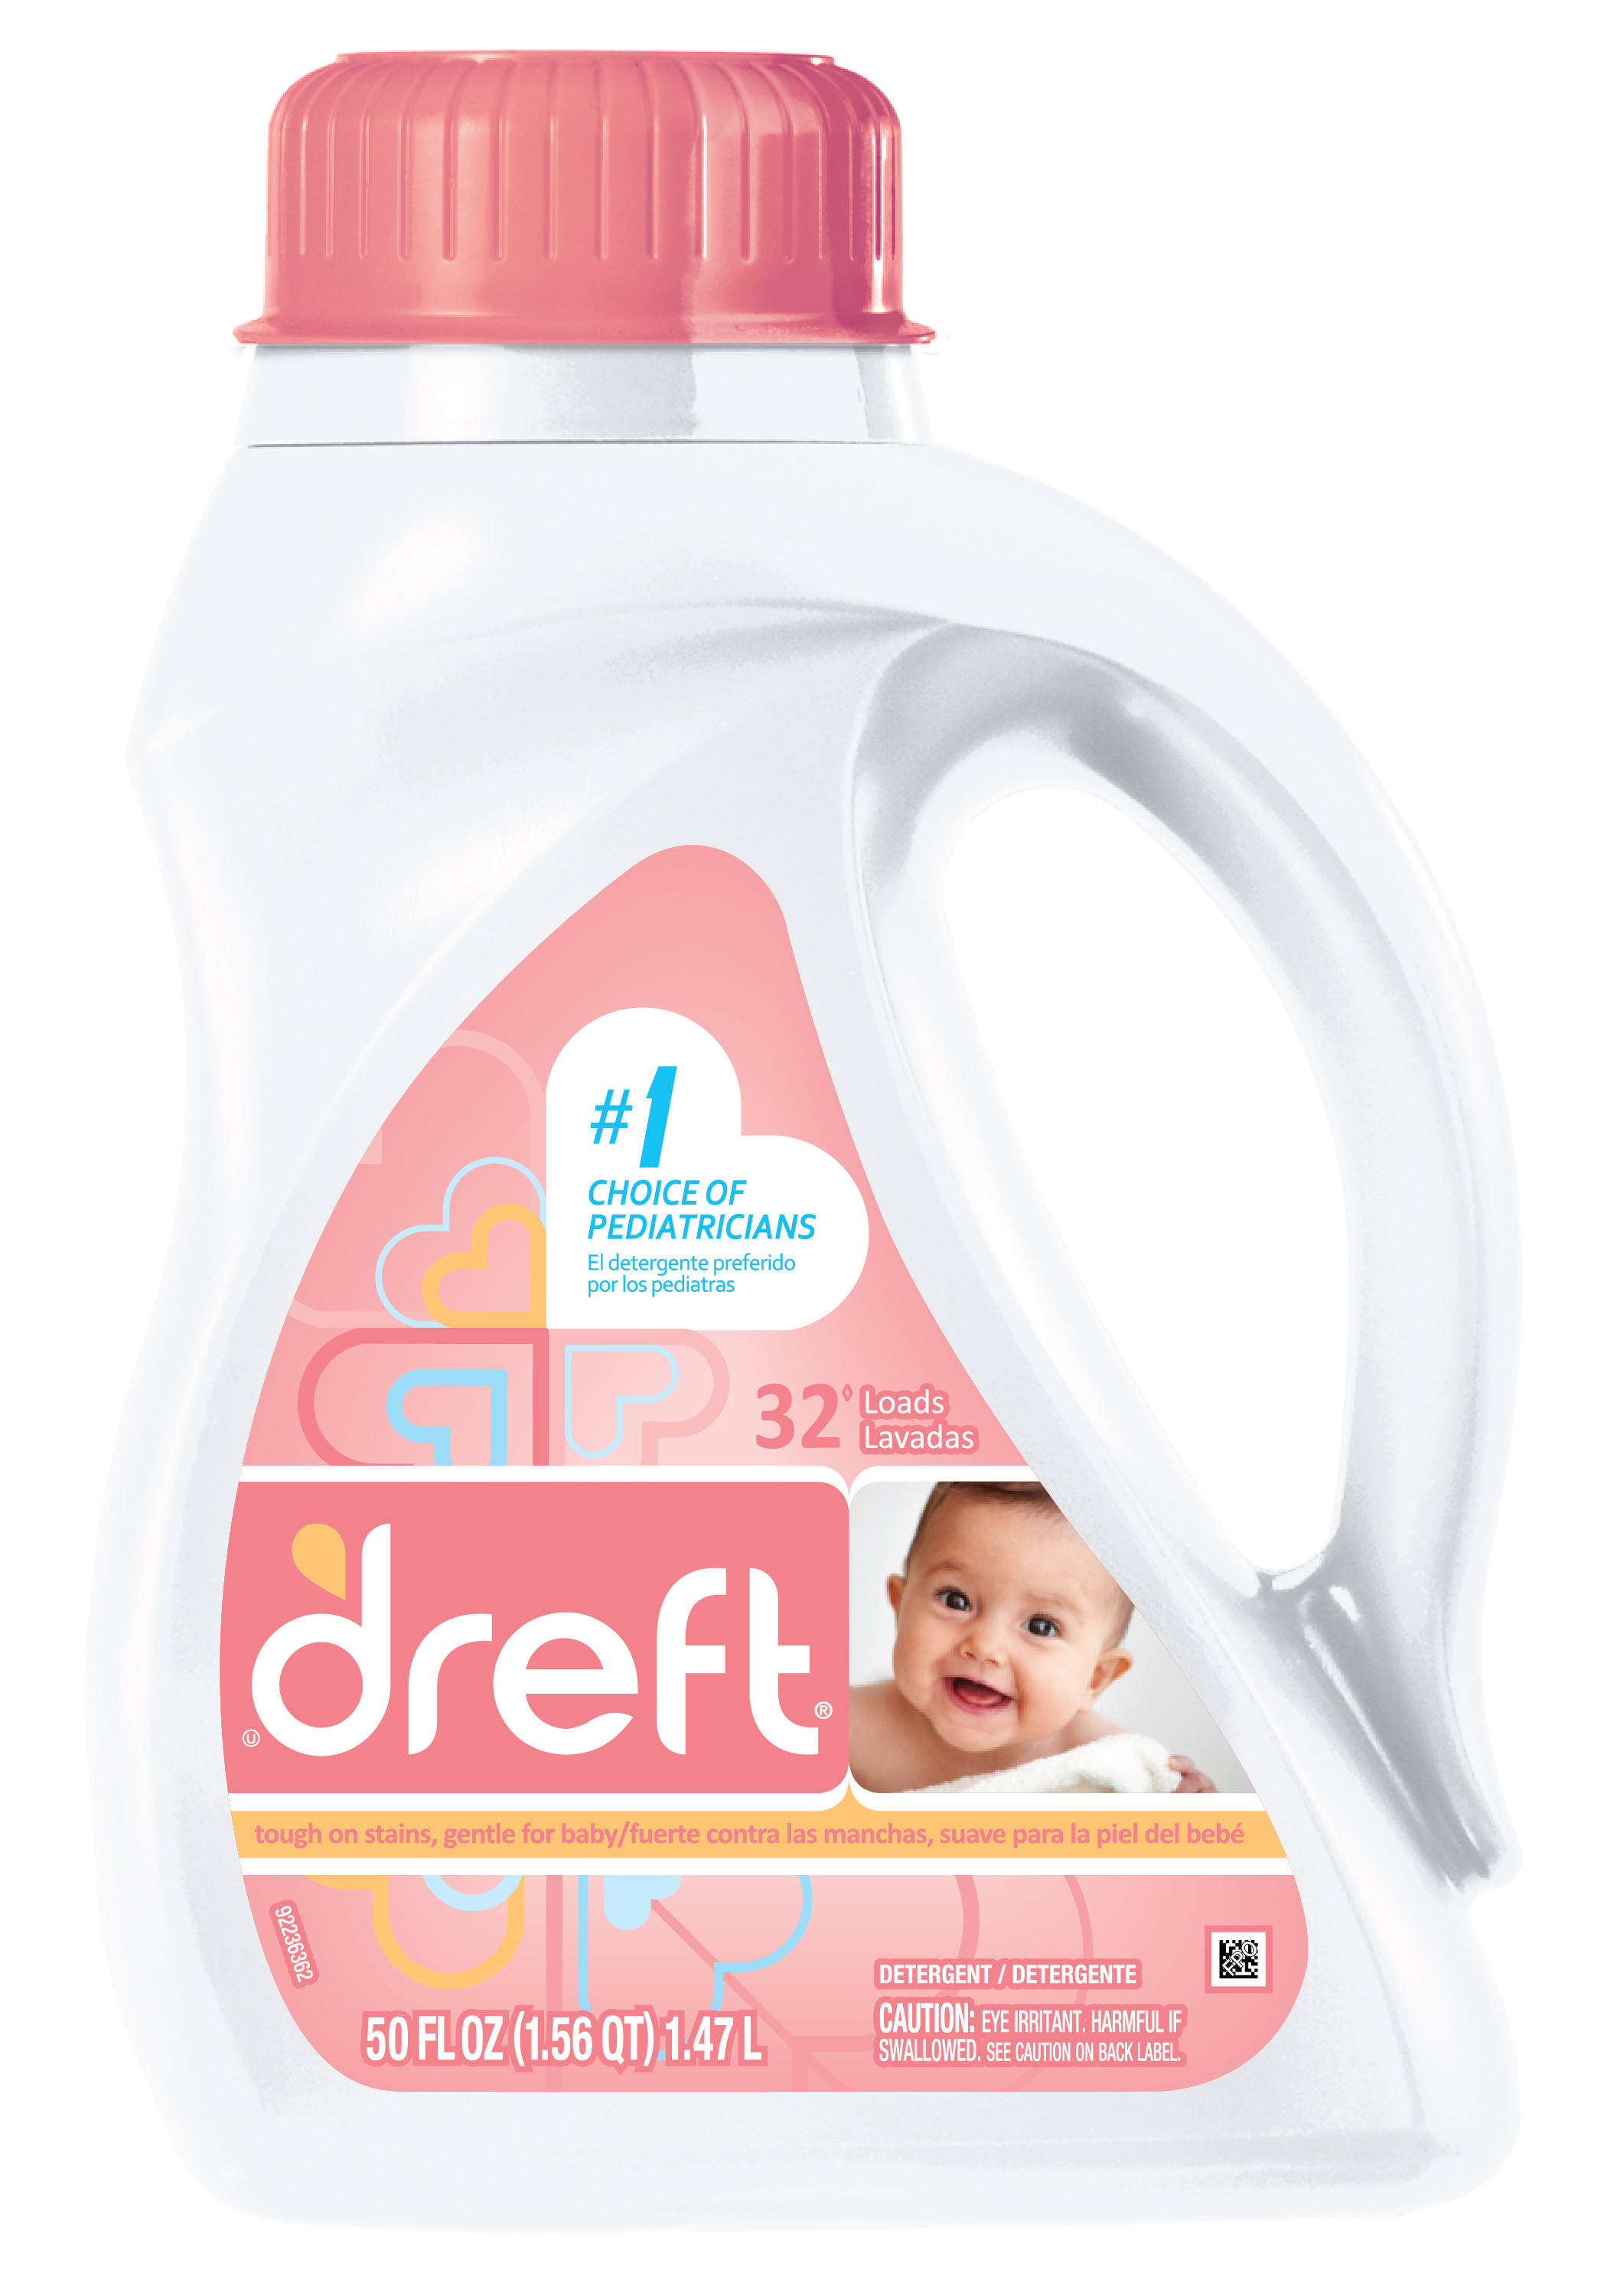 Dreft Baby Laundry Detergent Review and Giveaway